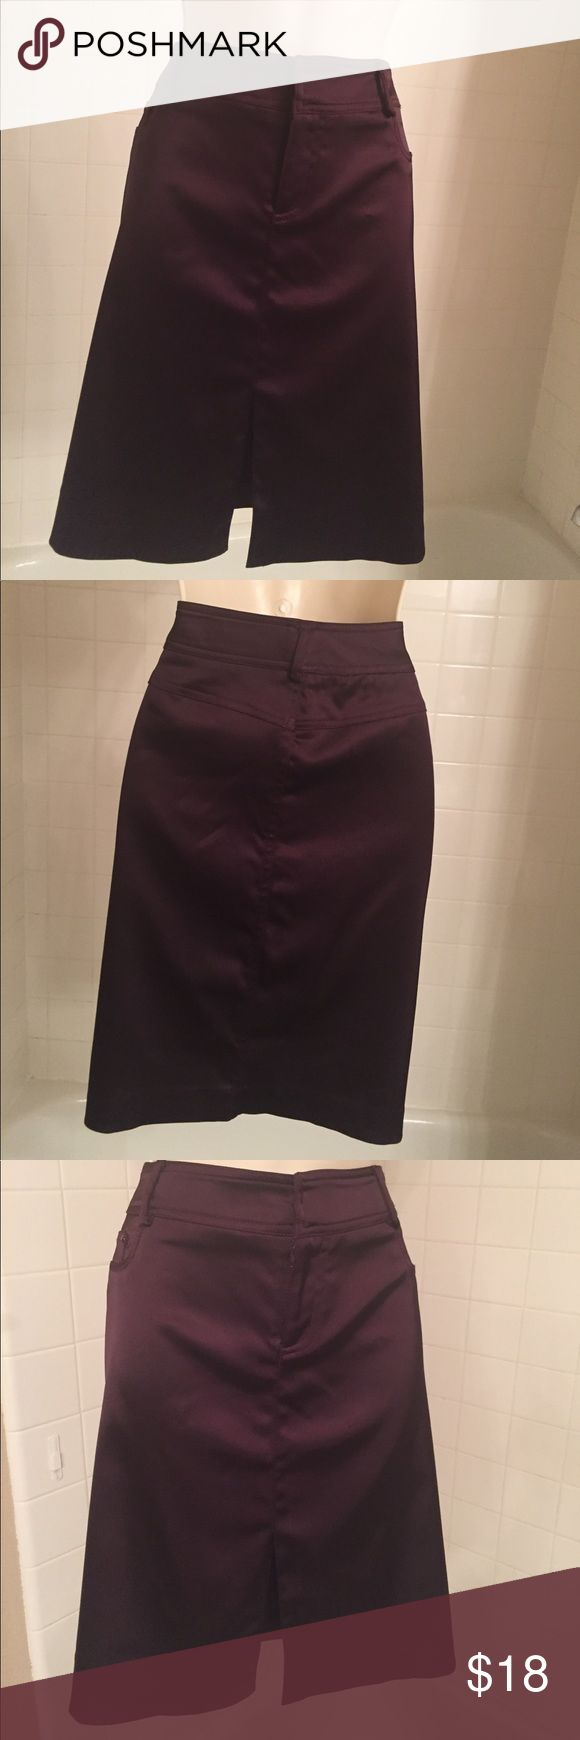 CACHE SKIRT SIZE 6 CACHE SKIRT WITH FRONT SLIT IN Front and belt loops. Pockets on both front sides do not open,   63% Acetate, 35% Naylon 2% Spandex. Color a Dark Purple..Size 6  Waist band side to side 16 1/2 inches. Length 20 1/2 inches . Great Final Price $18.00  Bundle and save 15%, one shipping. .. Please contact me if you need more Info. Cache Skirts